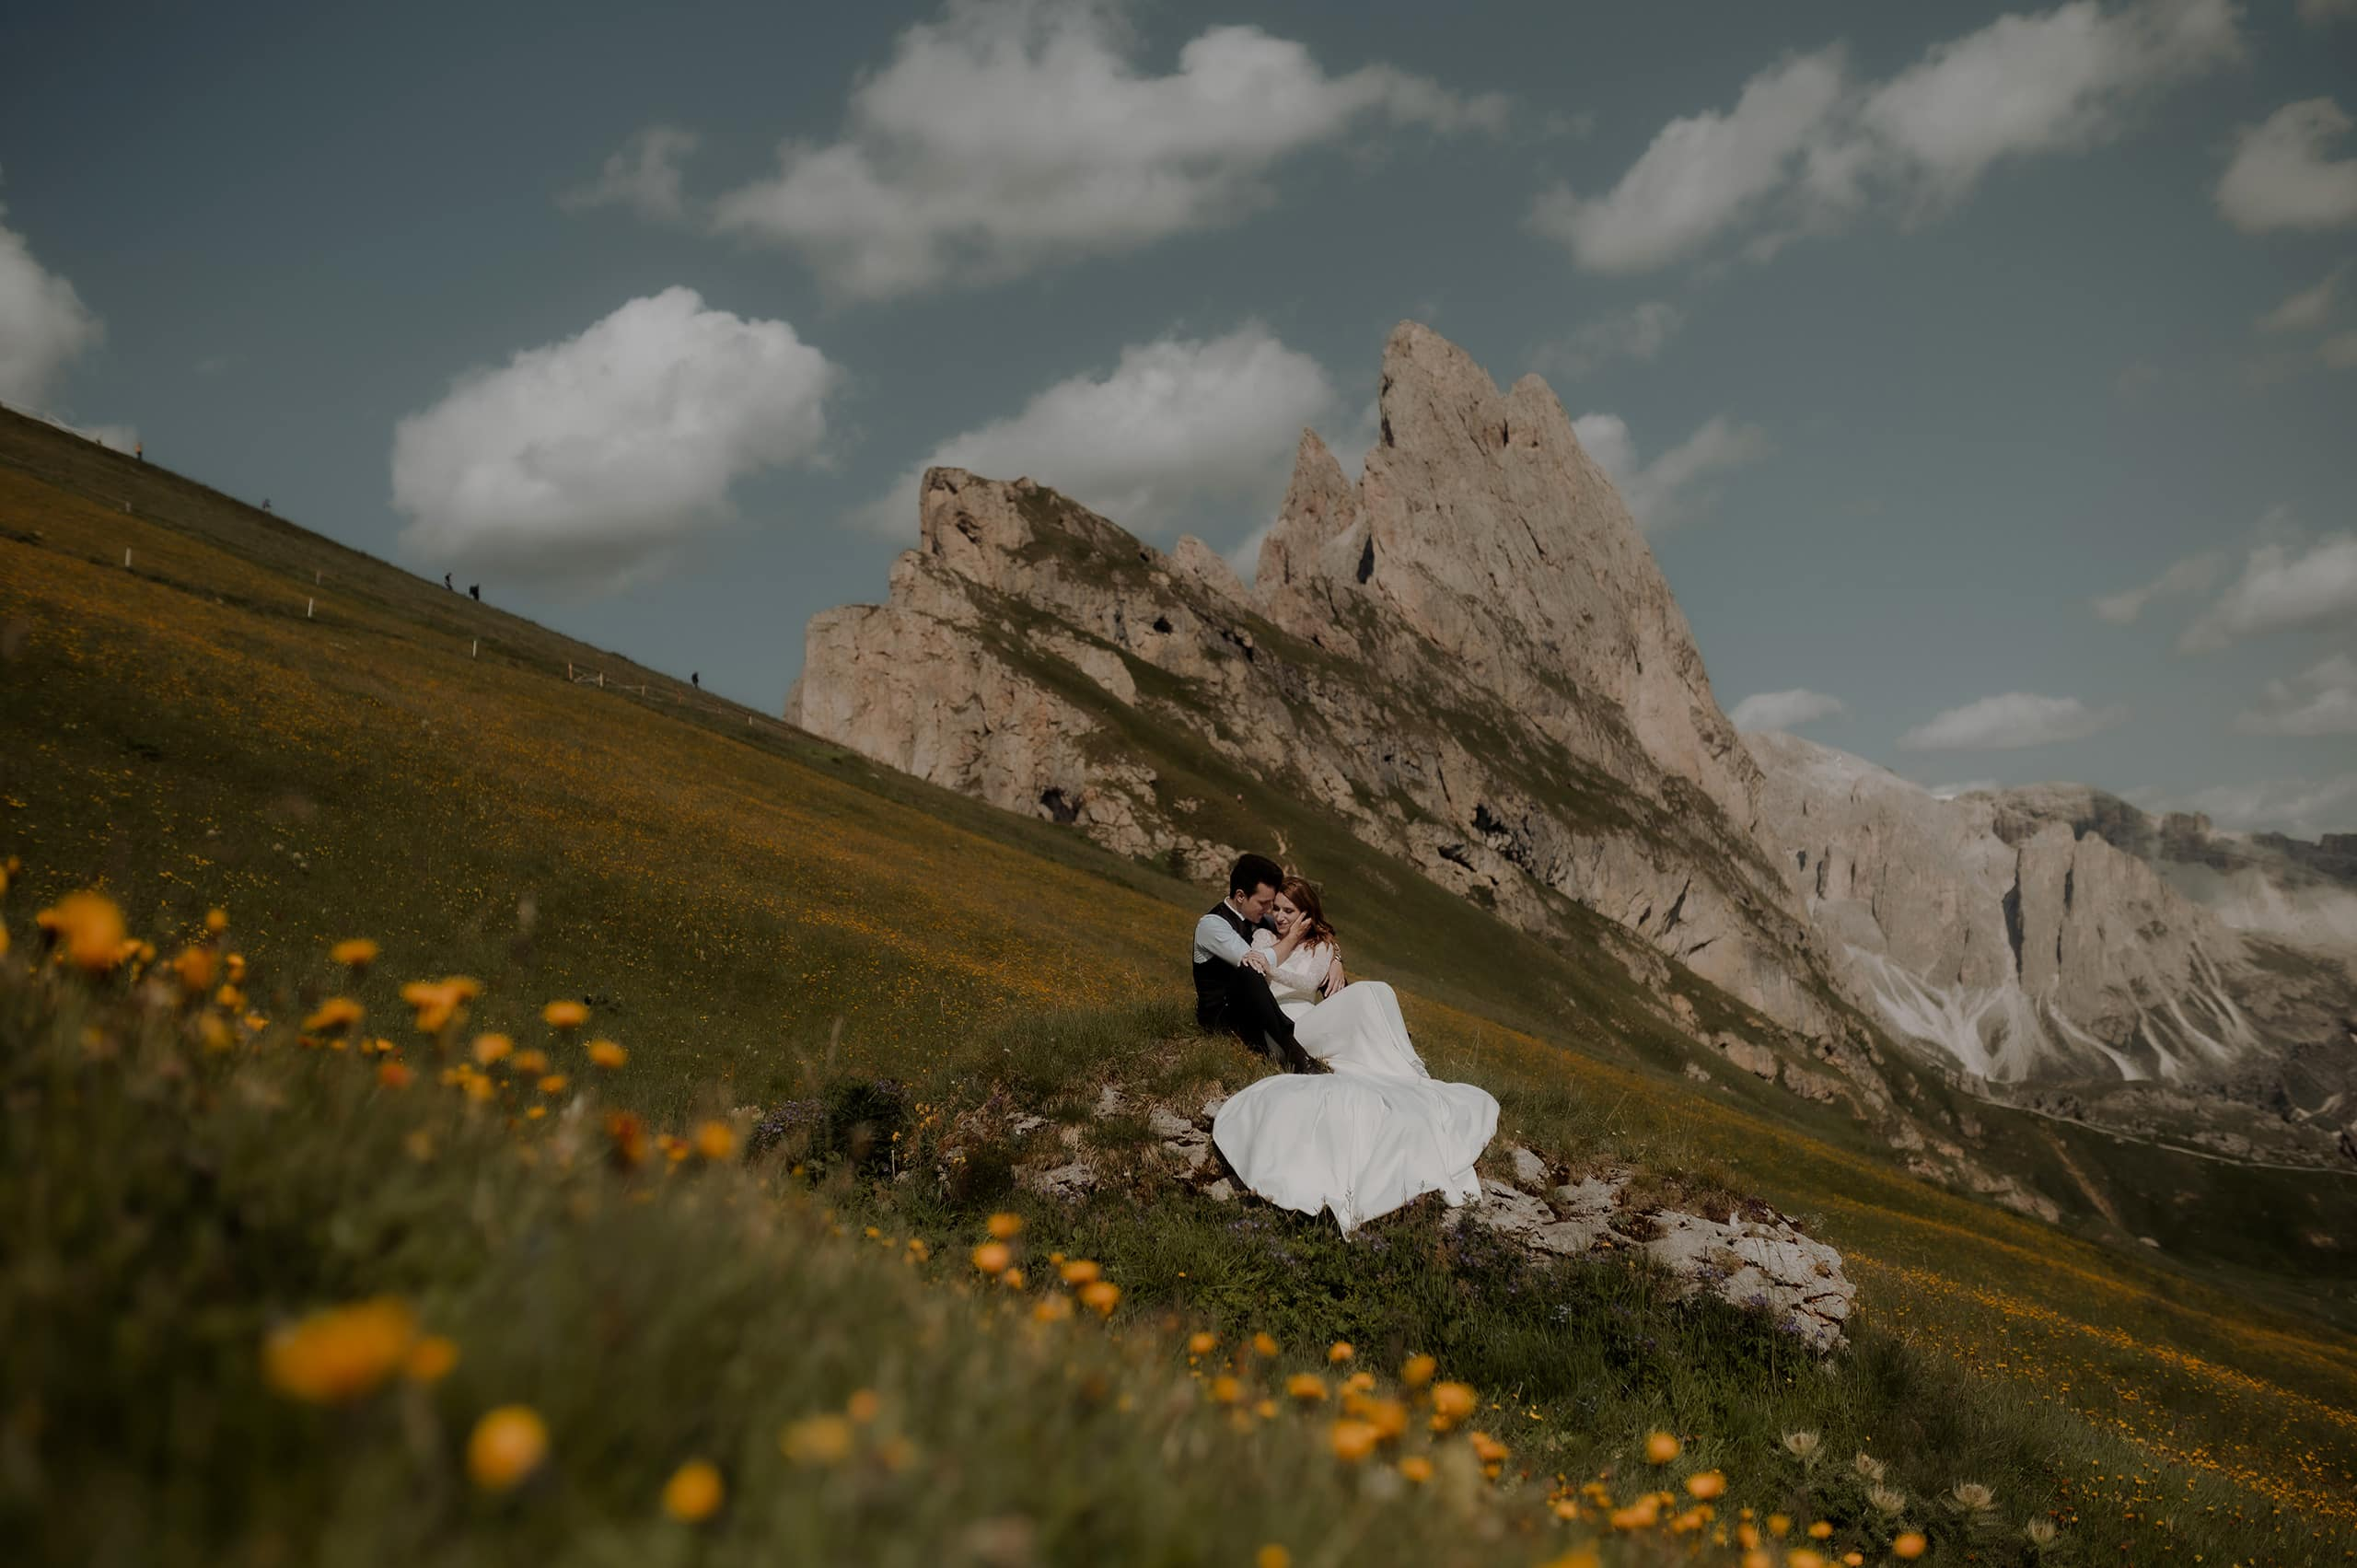 Bride and groom on a rock with flowers at Seceda in the Italian Dolomites with their Italy Elopement Photographer